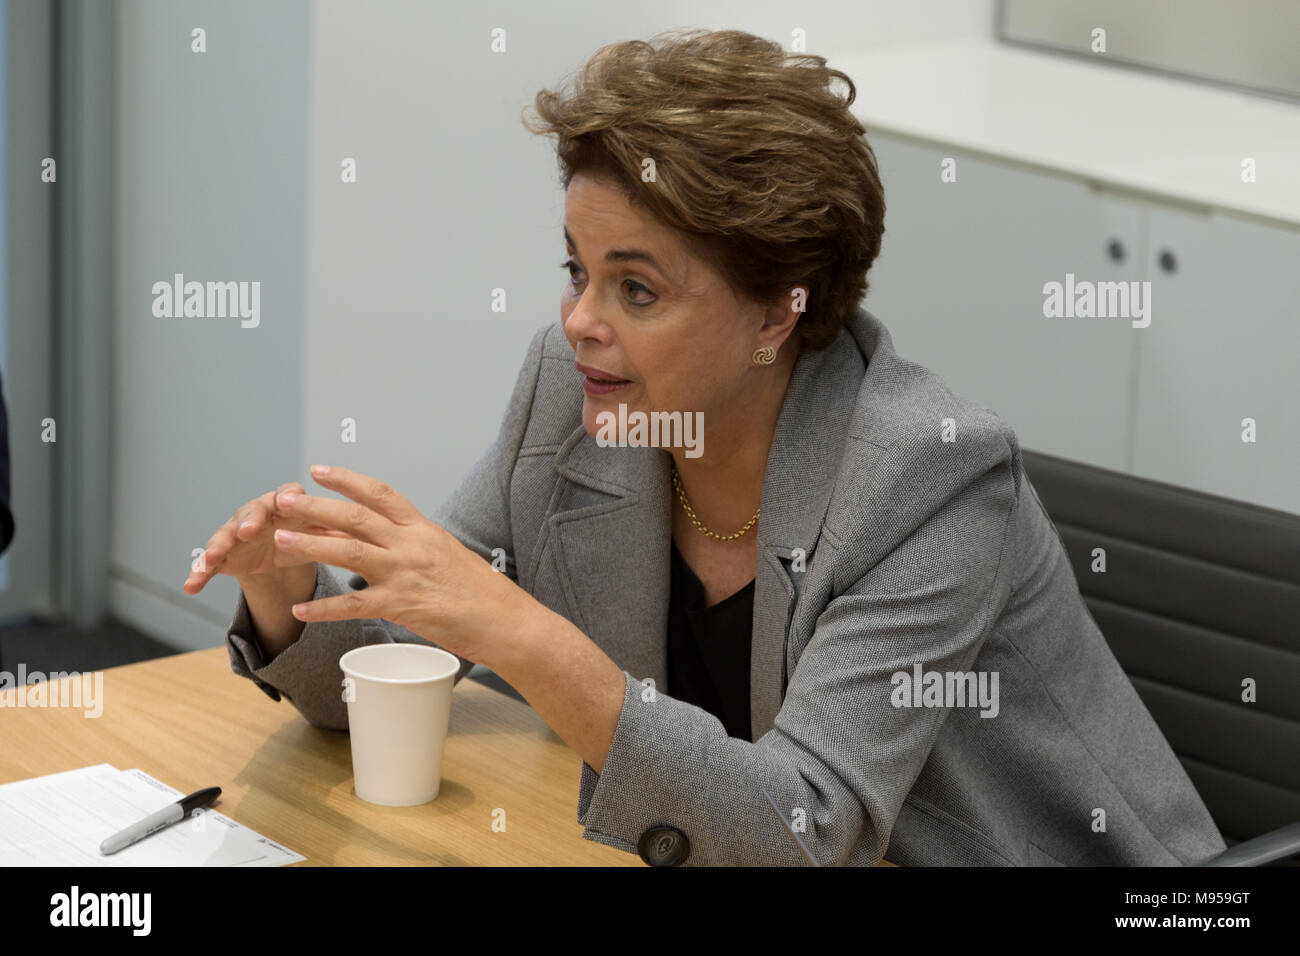 Princeton, NJ, USA - 13 April, 2017. Former Brazilian president Dilma Rousseff delivering a speech at Princeton University, United States - Stock Image